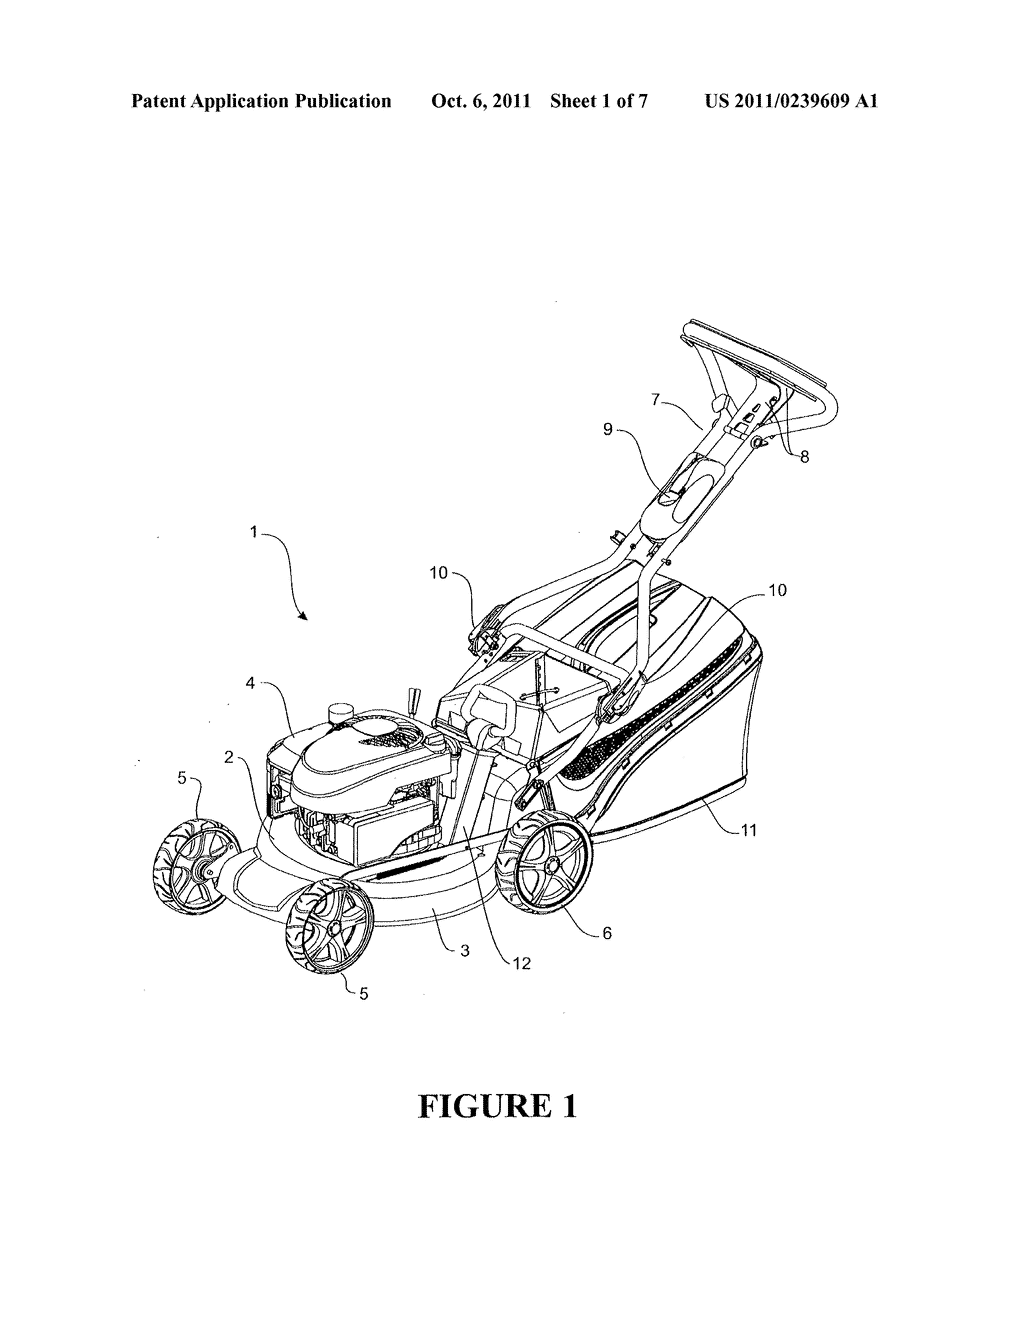 Wiring Diagram For A Craftsman Lawn Mower